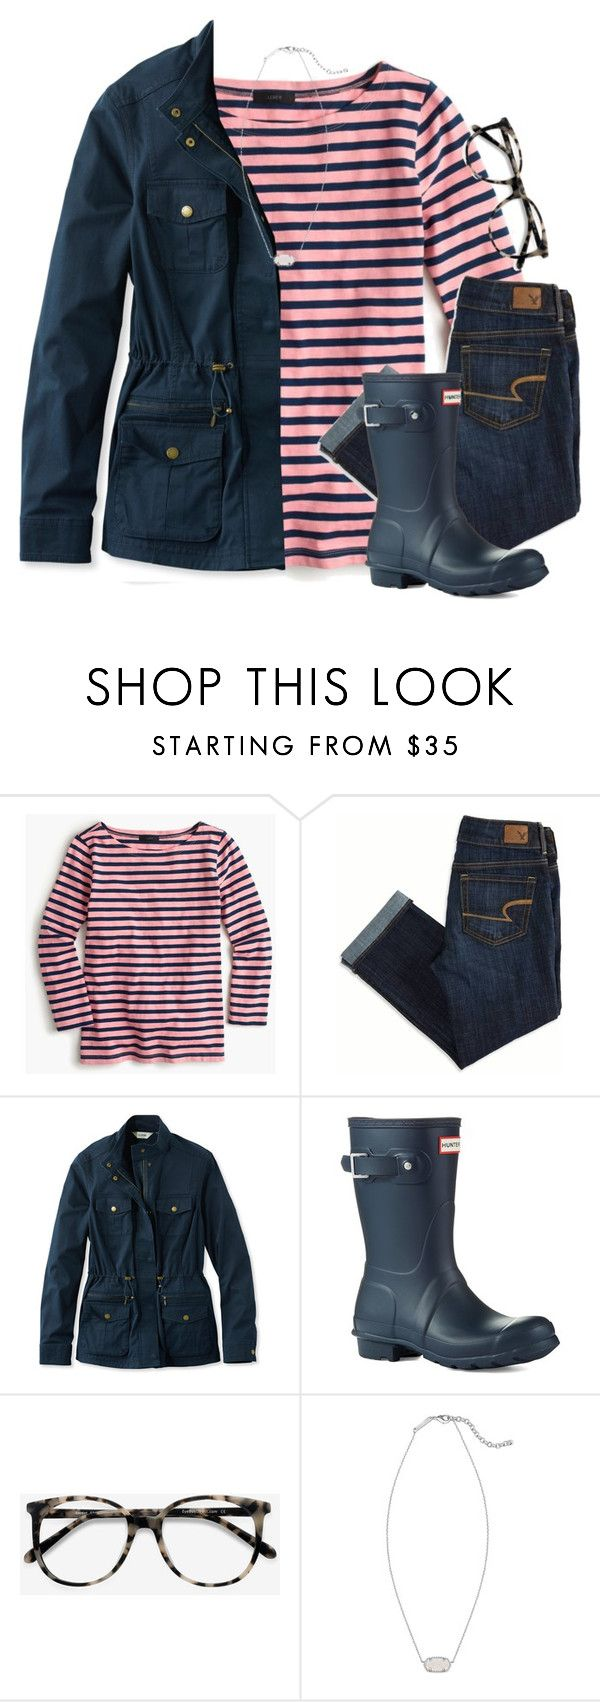 """""""I wish I was a Disney Princess :)"""" by amberfmillard-1 ❤ liked on Polyvore featuring J.Crew, American Eagle Outfitters, L.L.Bean, Hunter, Ace and Kendra Scott"""